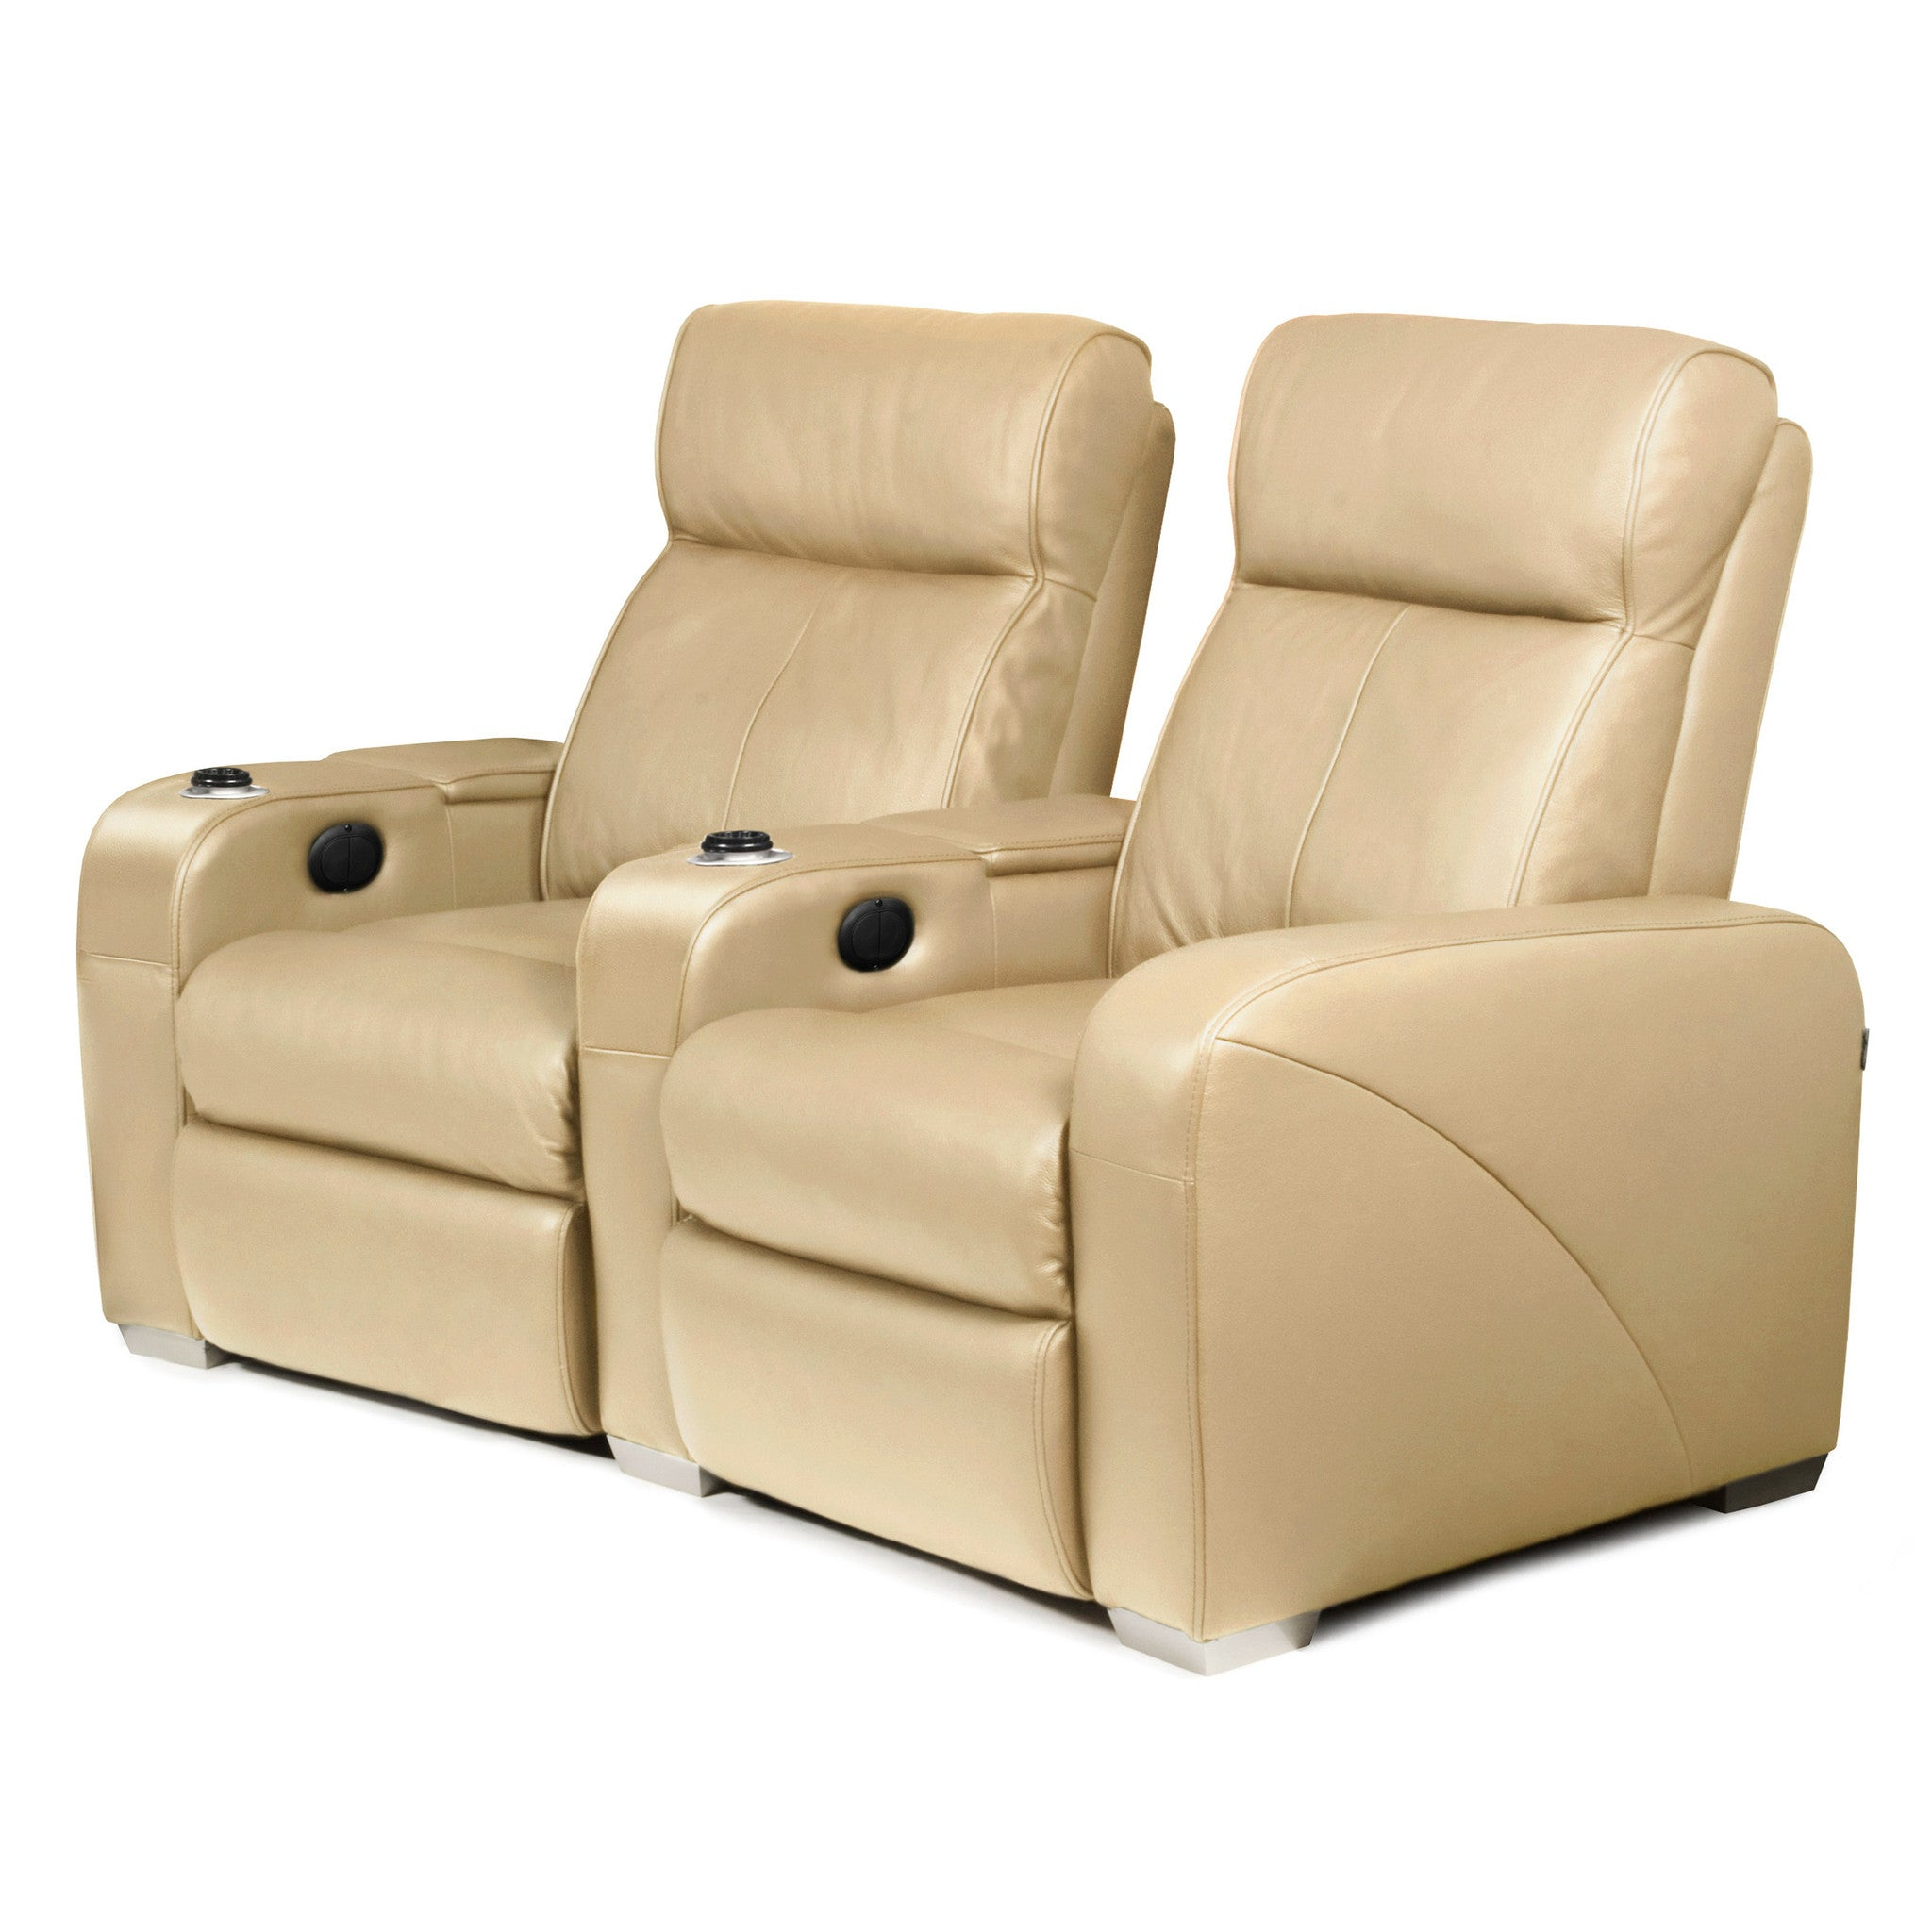 Premiere Home Cinema Seating 5 Seater Home Cinema Seating